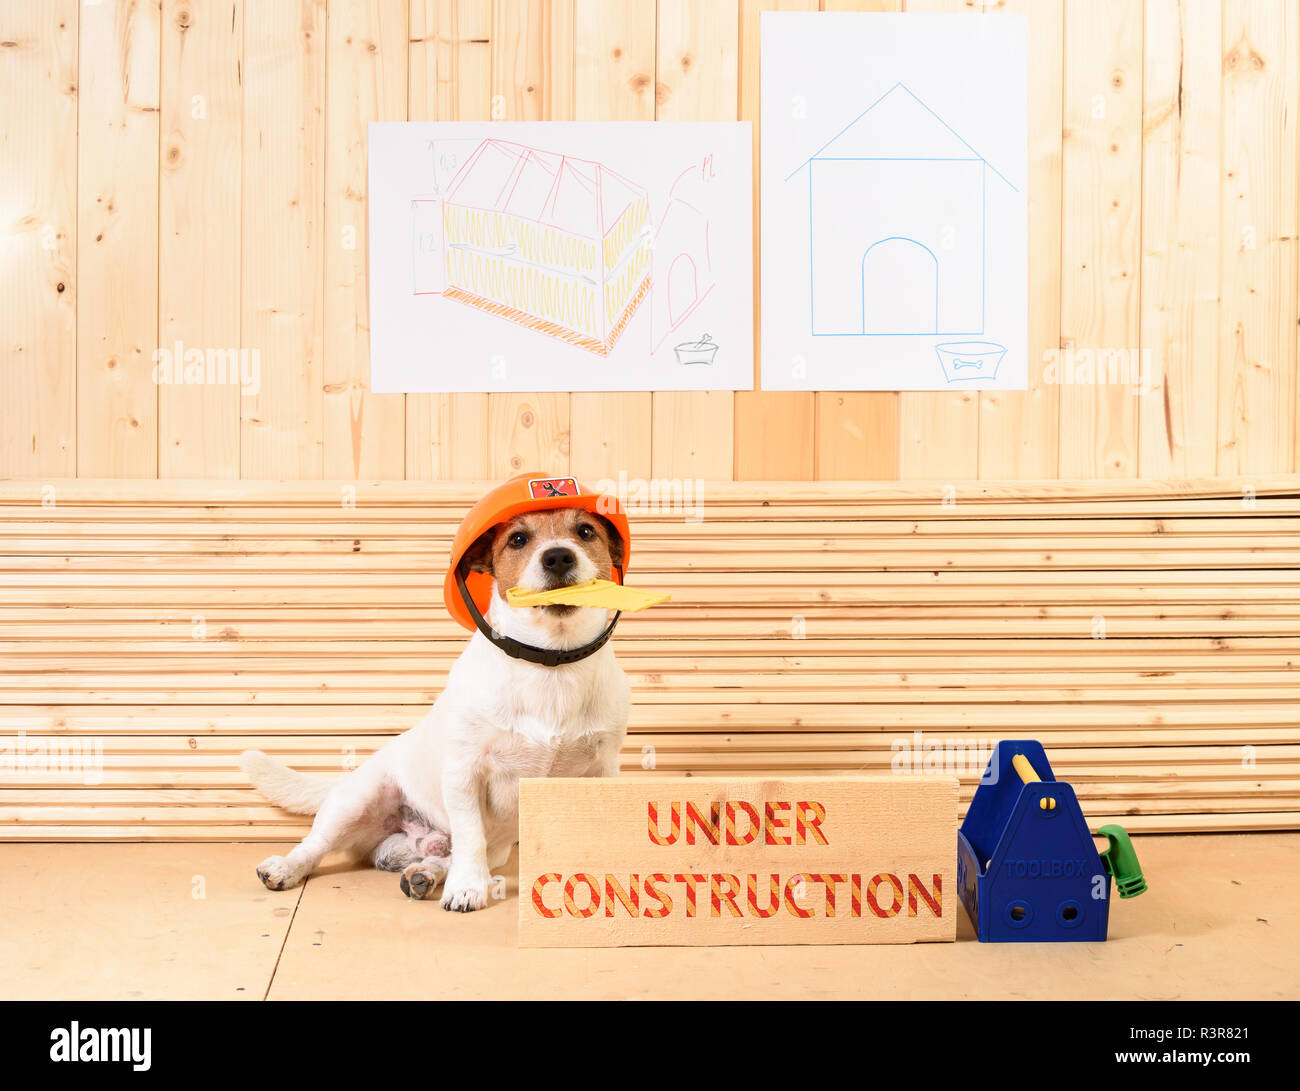 Amusing builder in hardhat at construction site next to beam with label 'Under construction' - Stock Image